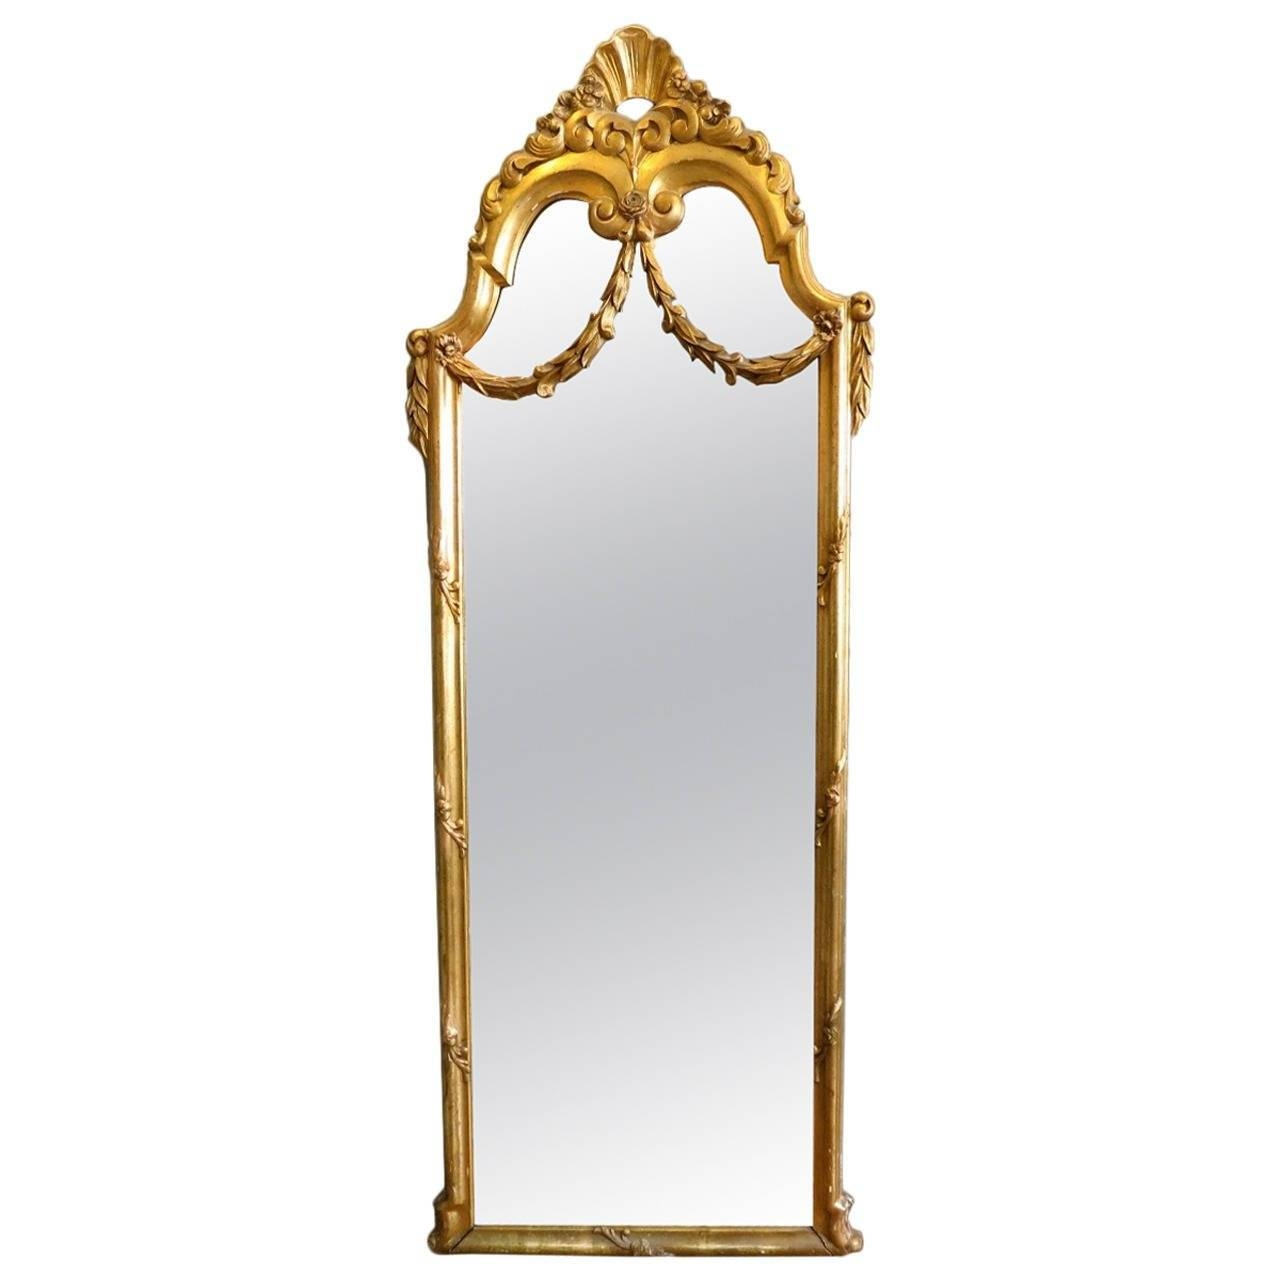 Antique French Gold Gilt Floor Standing Mirror At 1Stdibs intended for Gold Standing Mirrors (Image 4 of 15)